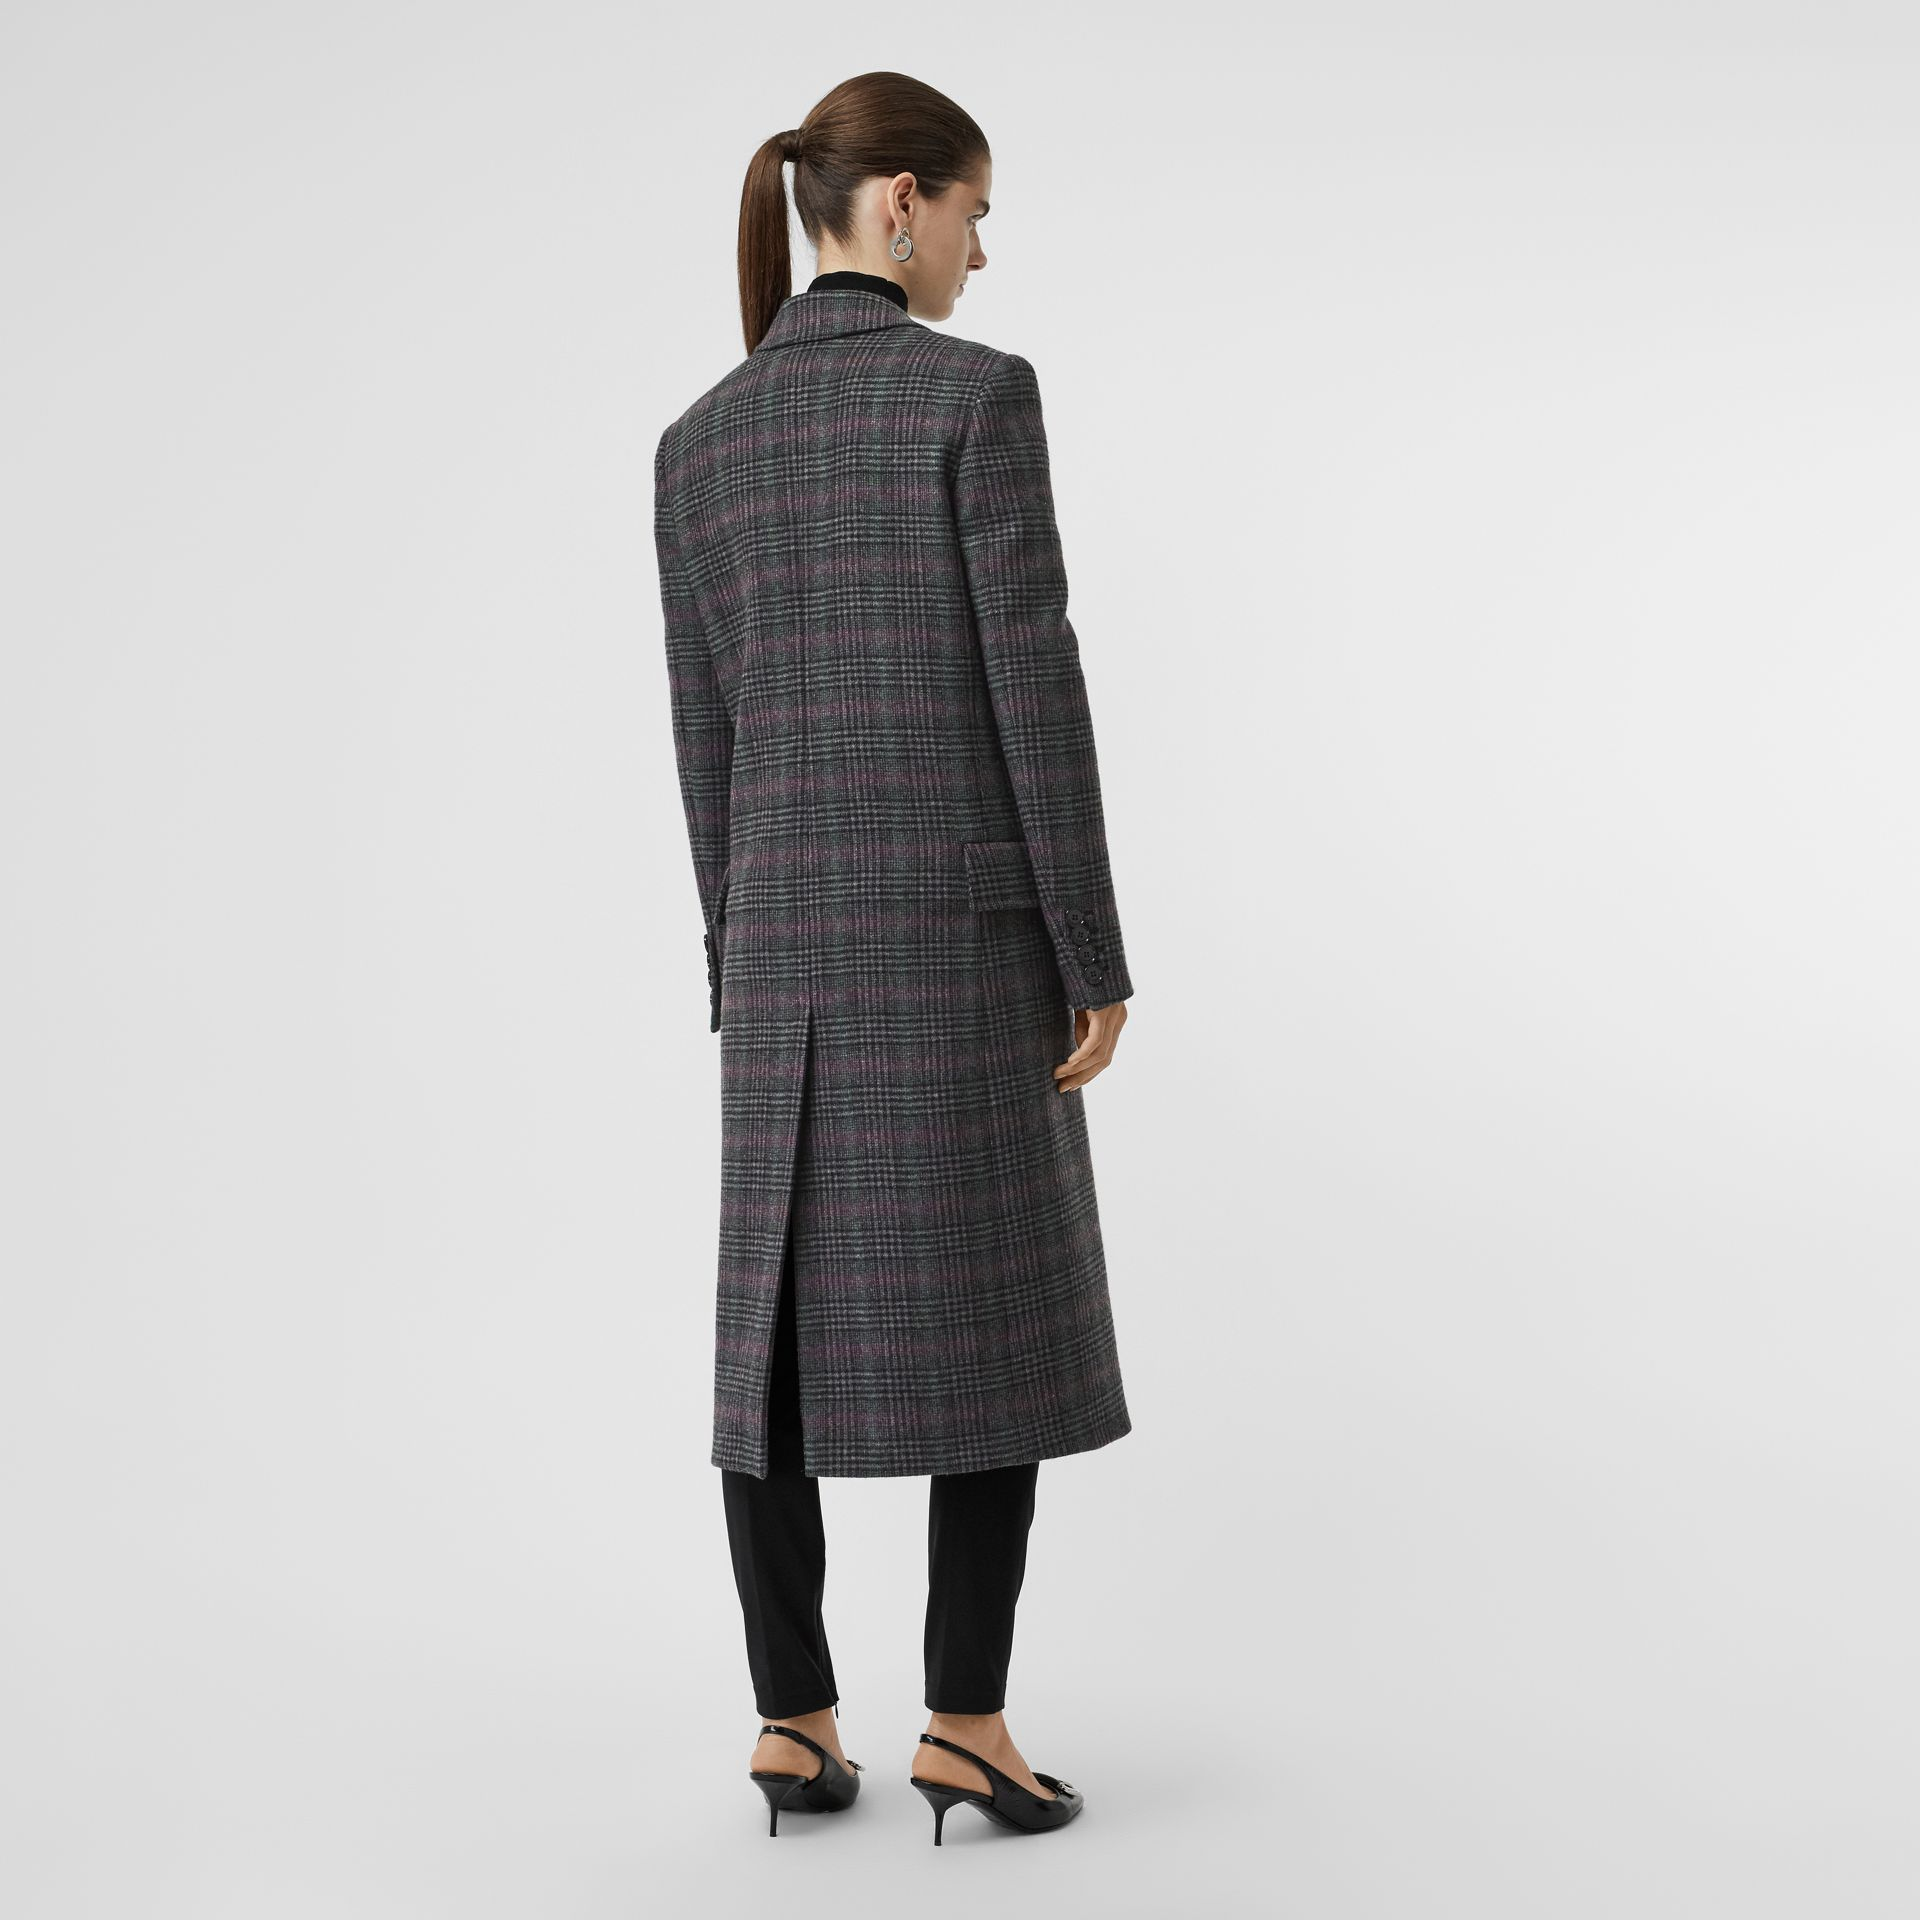 Prince of Wales Check Wool Tailored Coat in Charcoal - Women | Burberry United States - gallery image 2